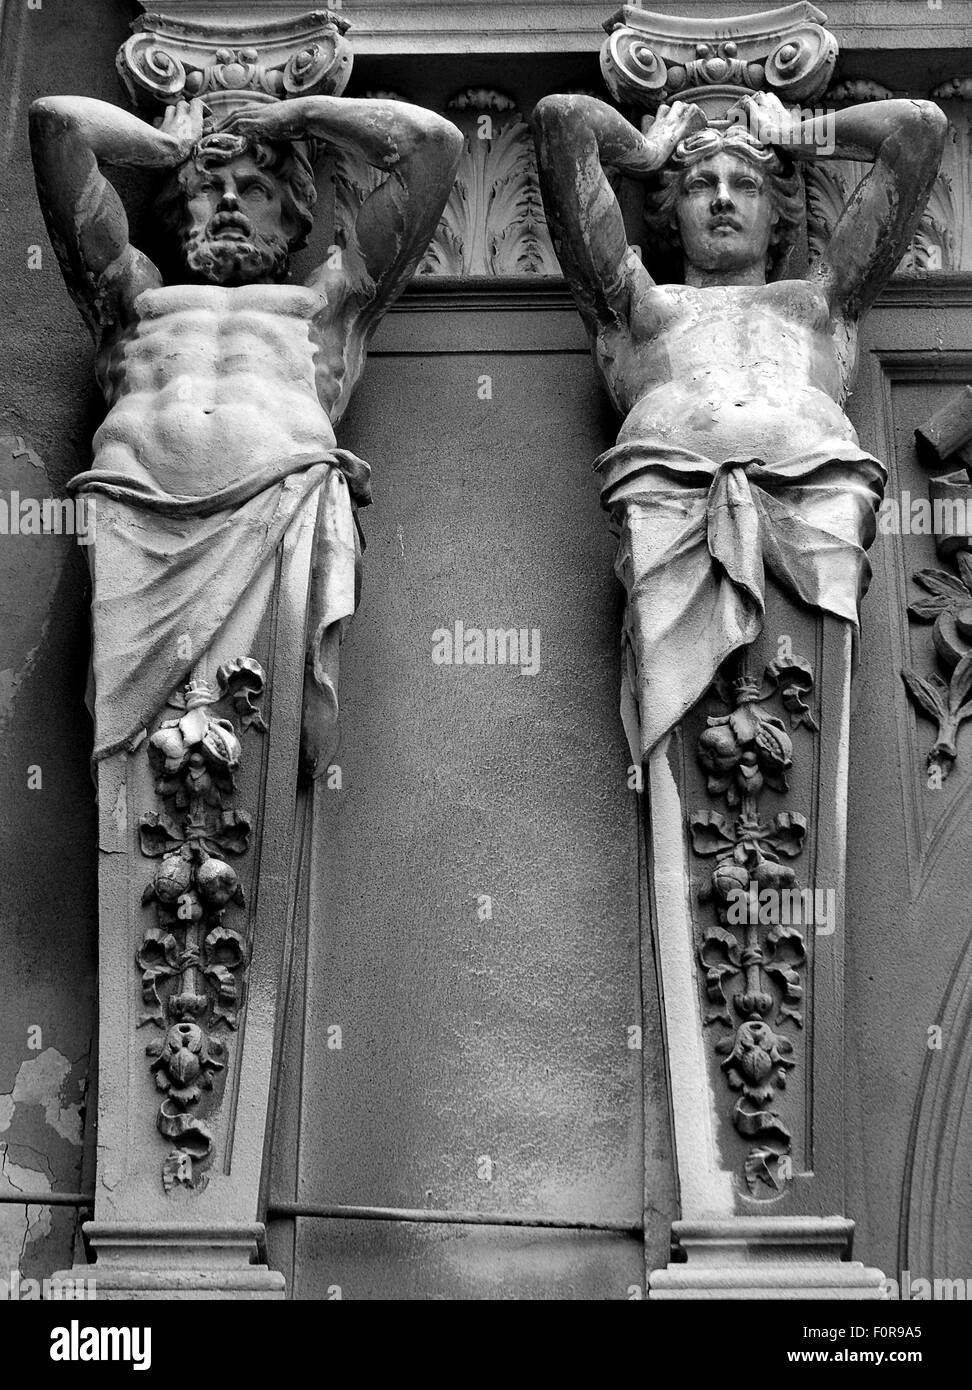 Neo-classical statues above  entrance to the glass-covered arcade in Bucharest, Romania - Stock Image